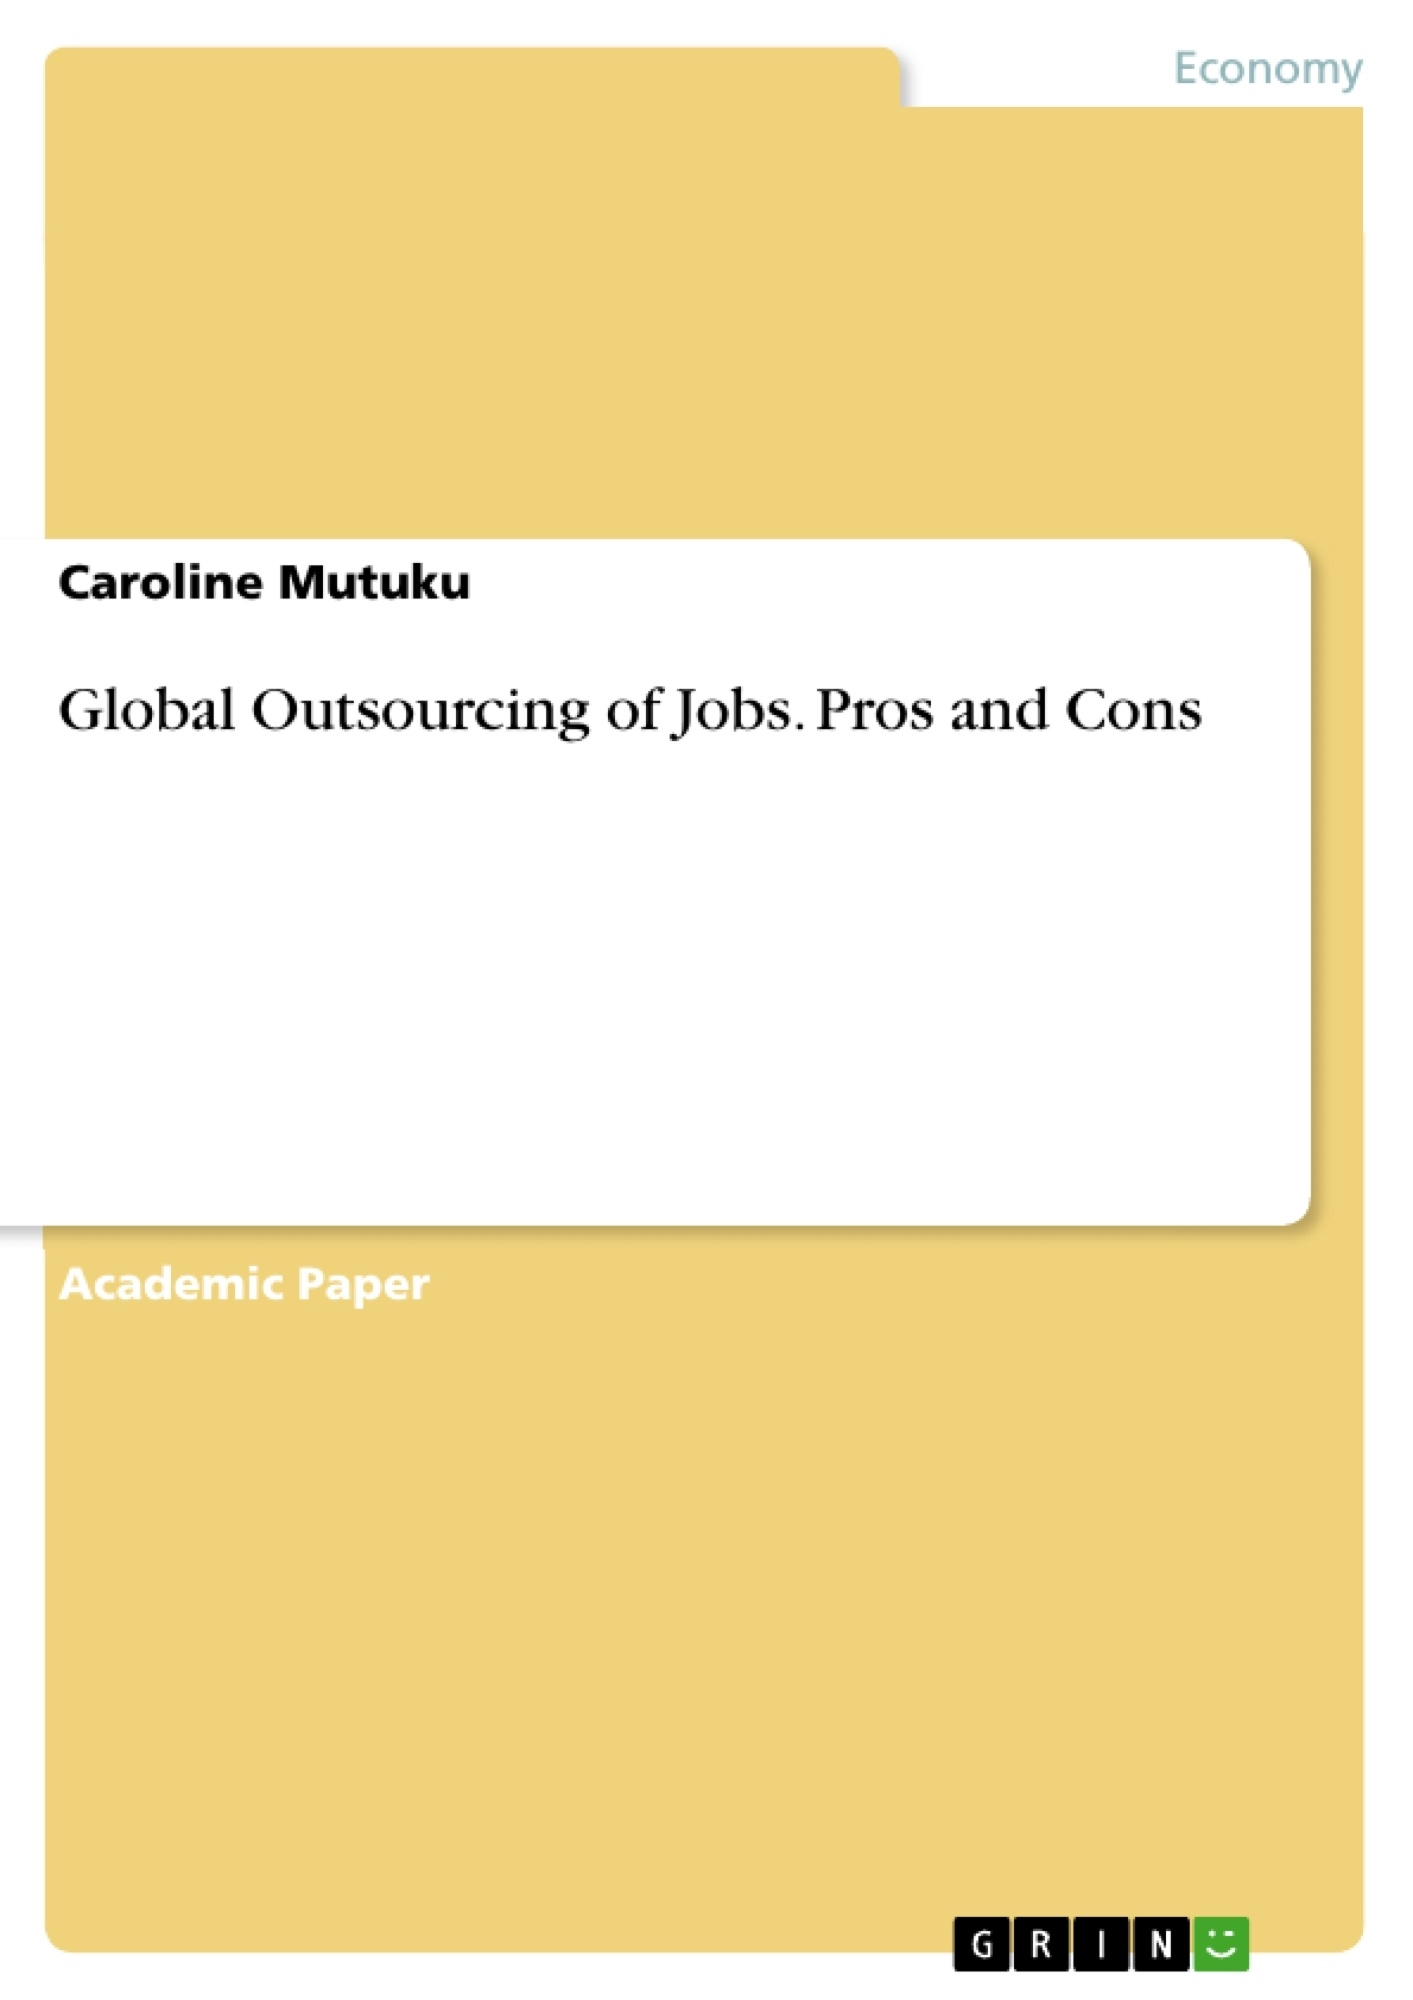 Title: Global Outsourcing of Jobs. Pros and Cons